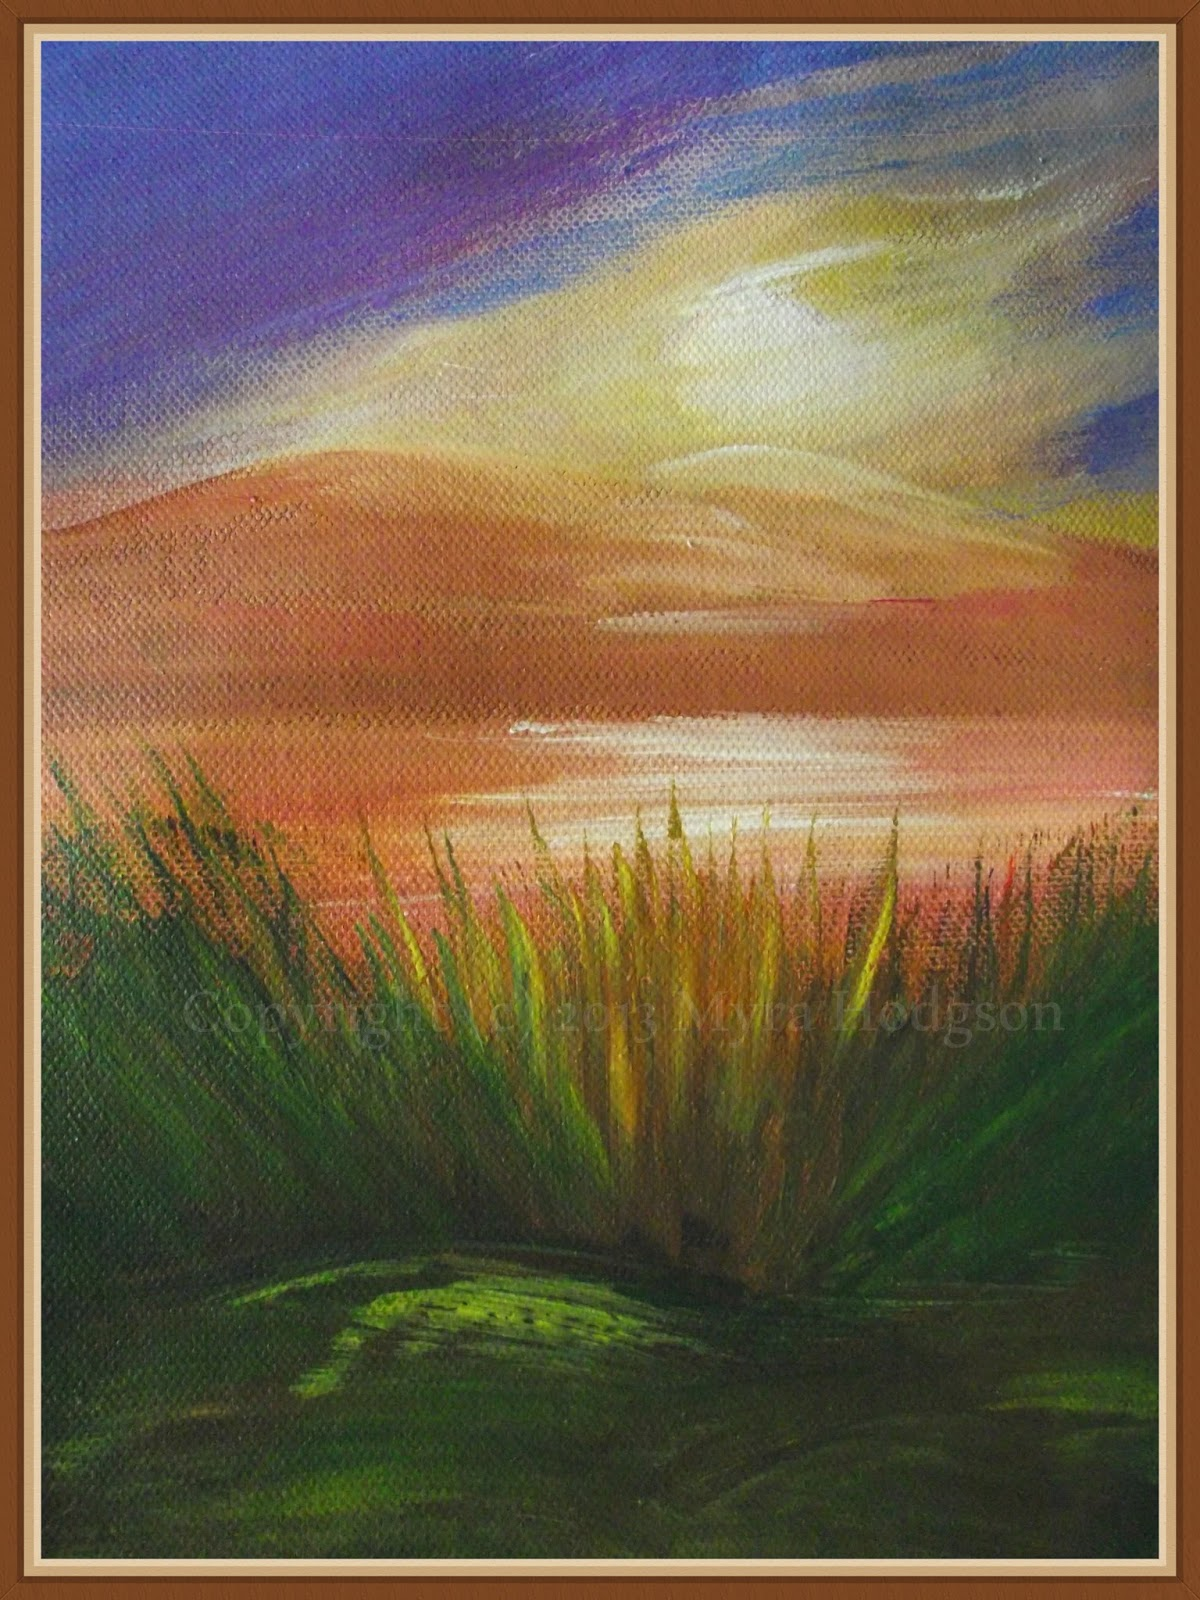 Painting The Landscape In Acrylics And Oil Pastels